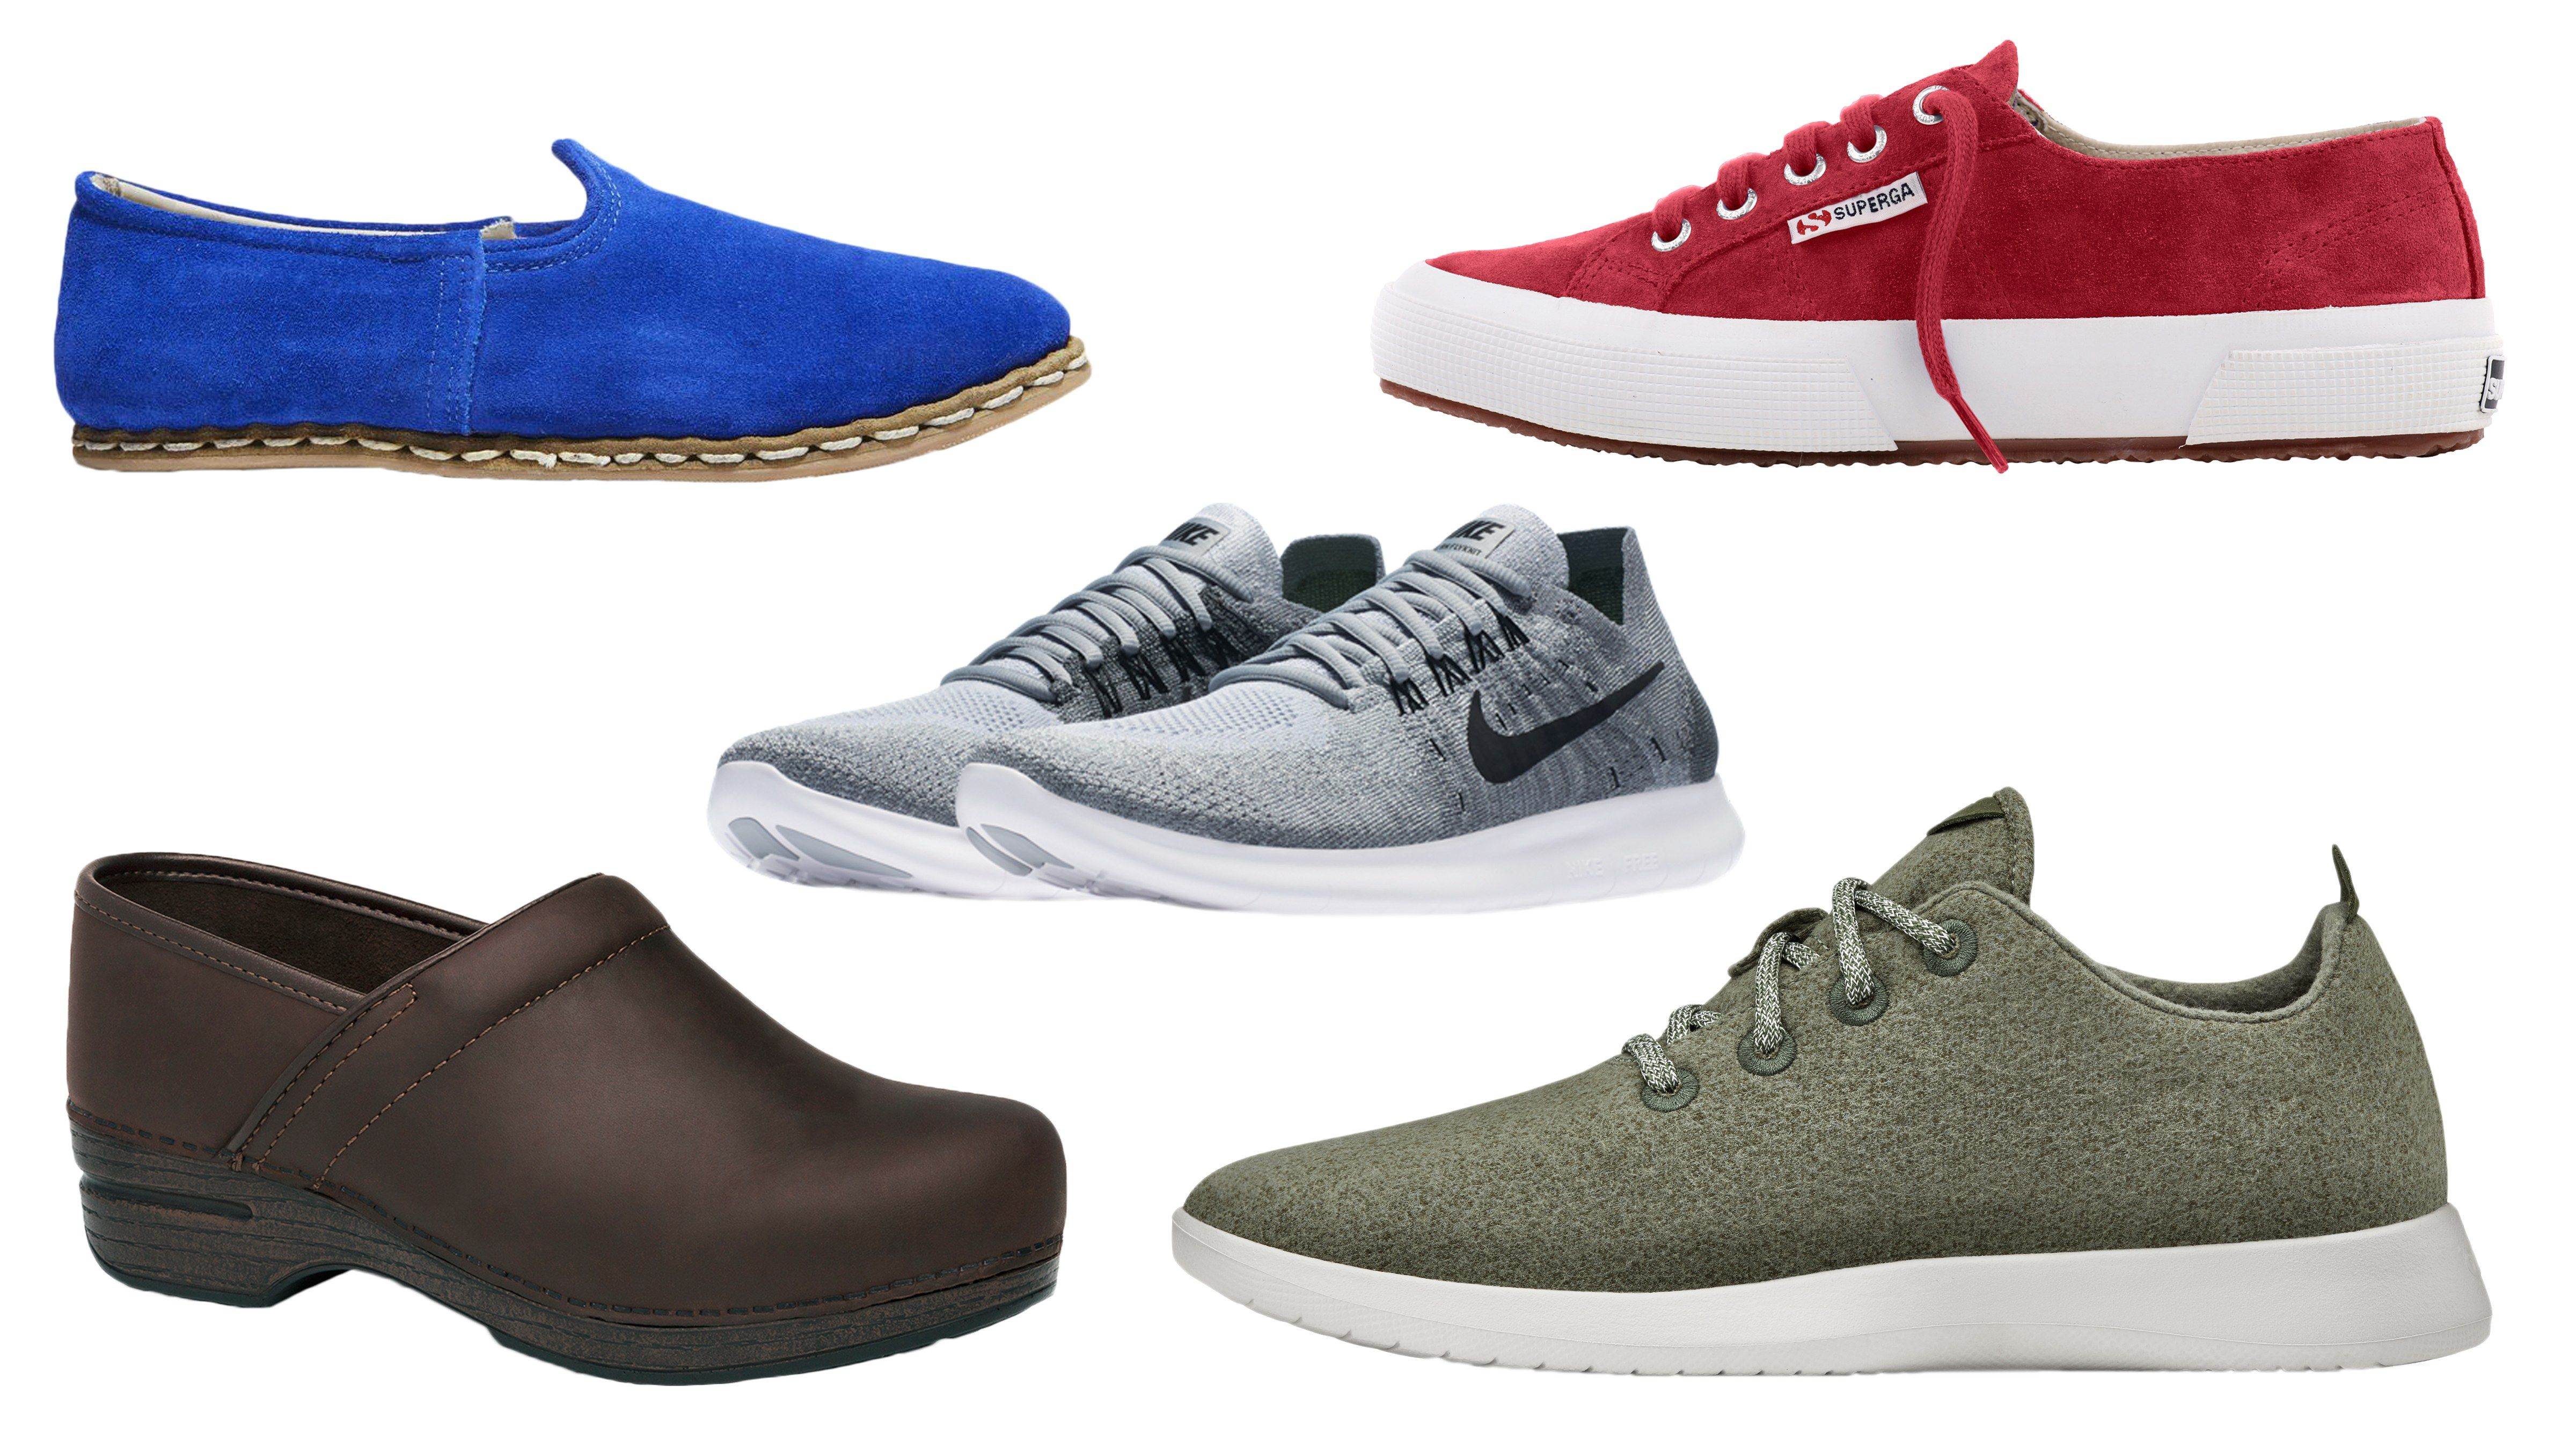 9eb28f1ba66c ... Condé Nast Traveler. The Best Shoes to Get You Through Airports